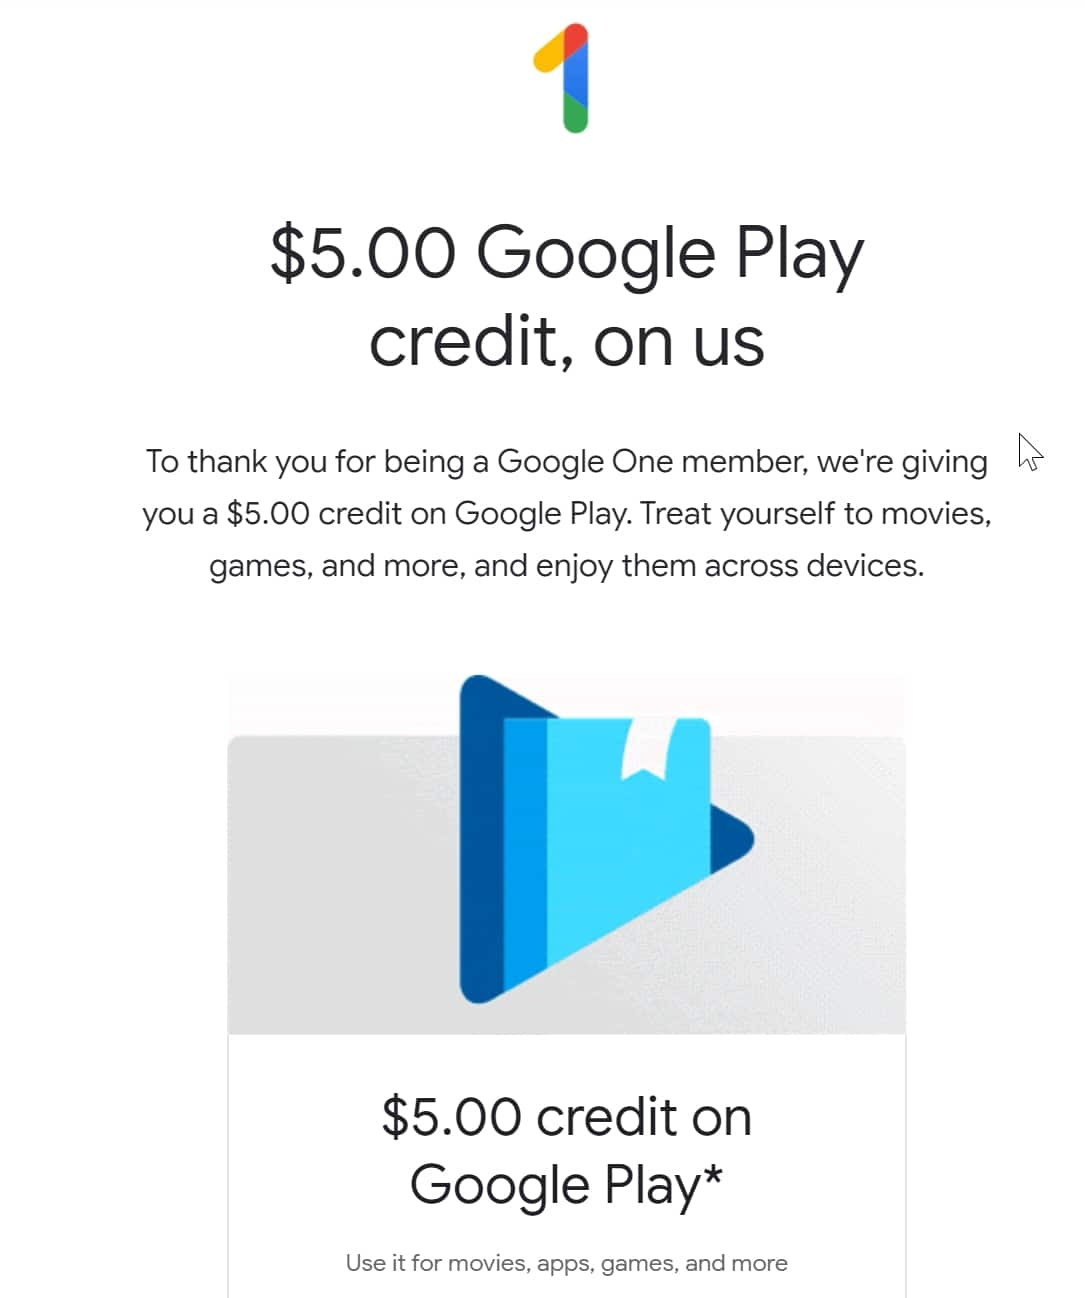 $5 Free Google Play Credit for Google One customer